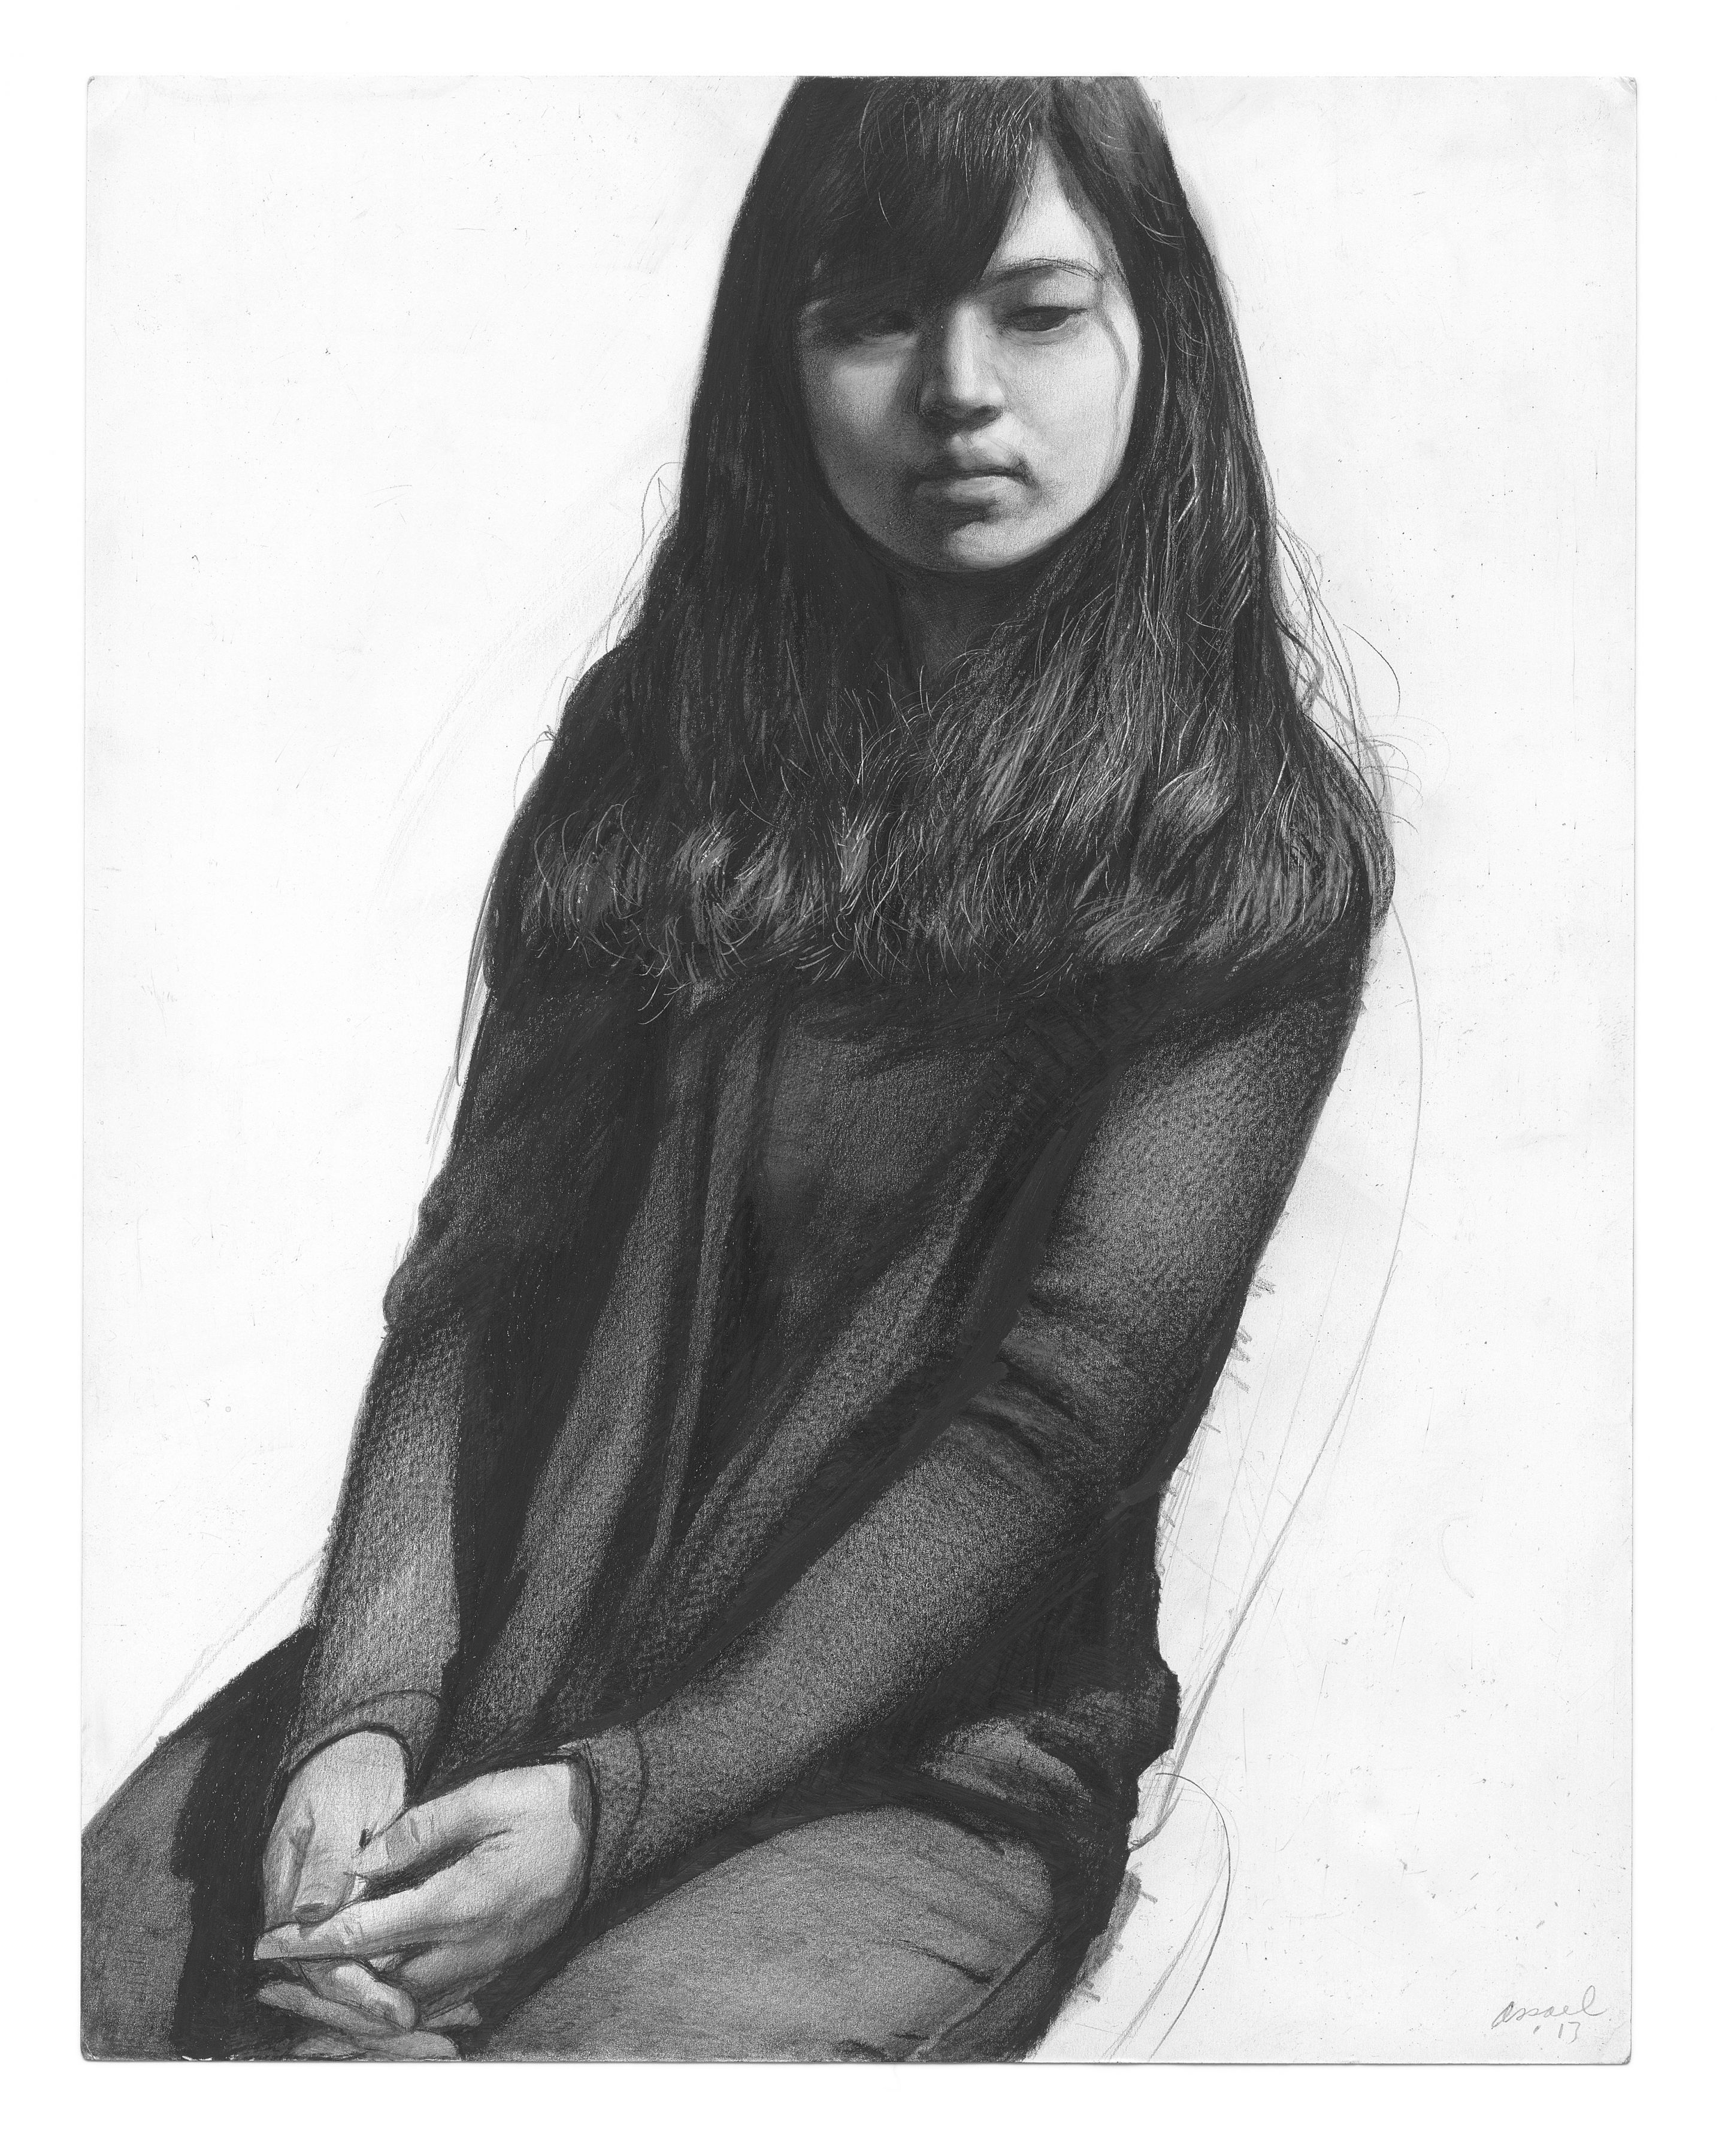 steven assael, Suezon Kim, 2013, graphite and crayon on paper, 14 x 11 inches